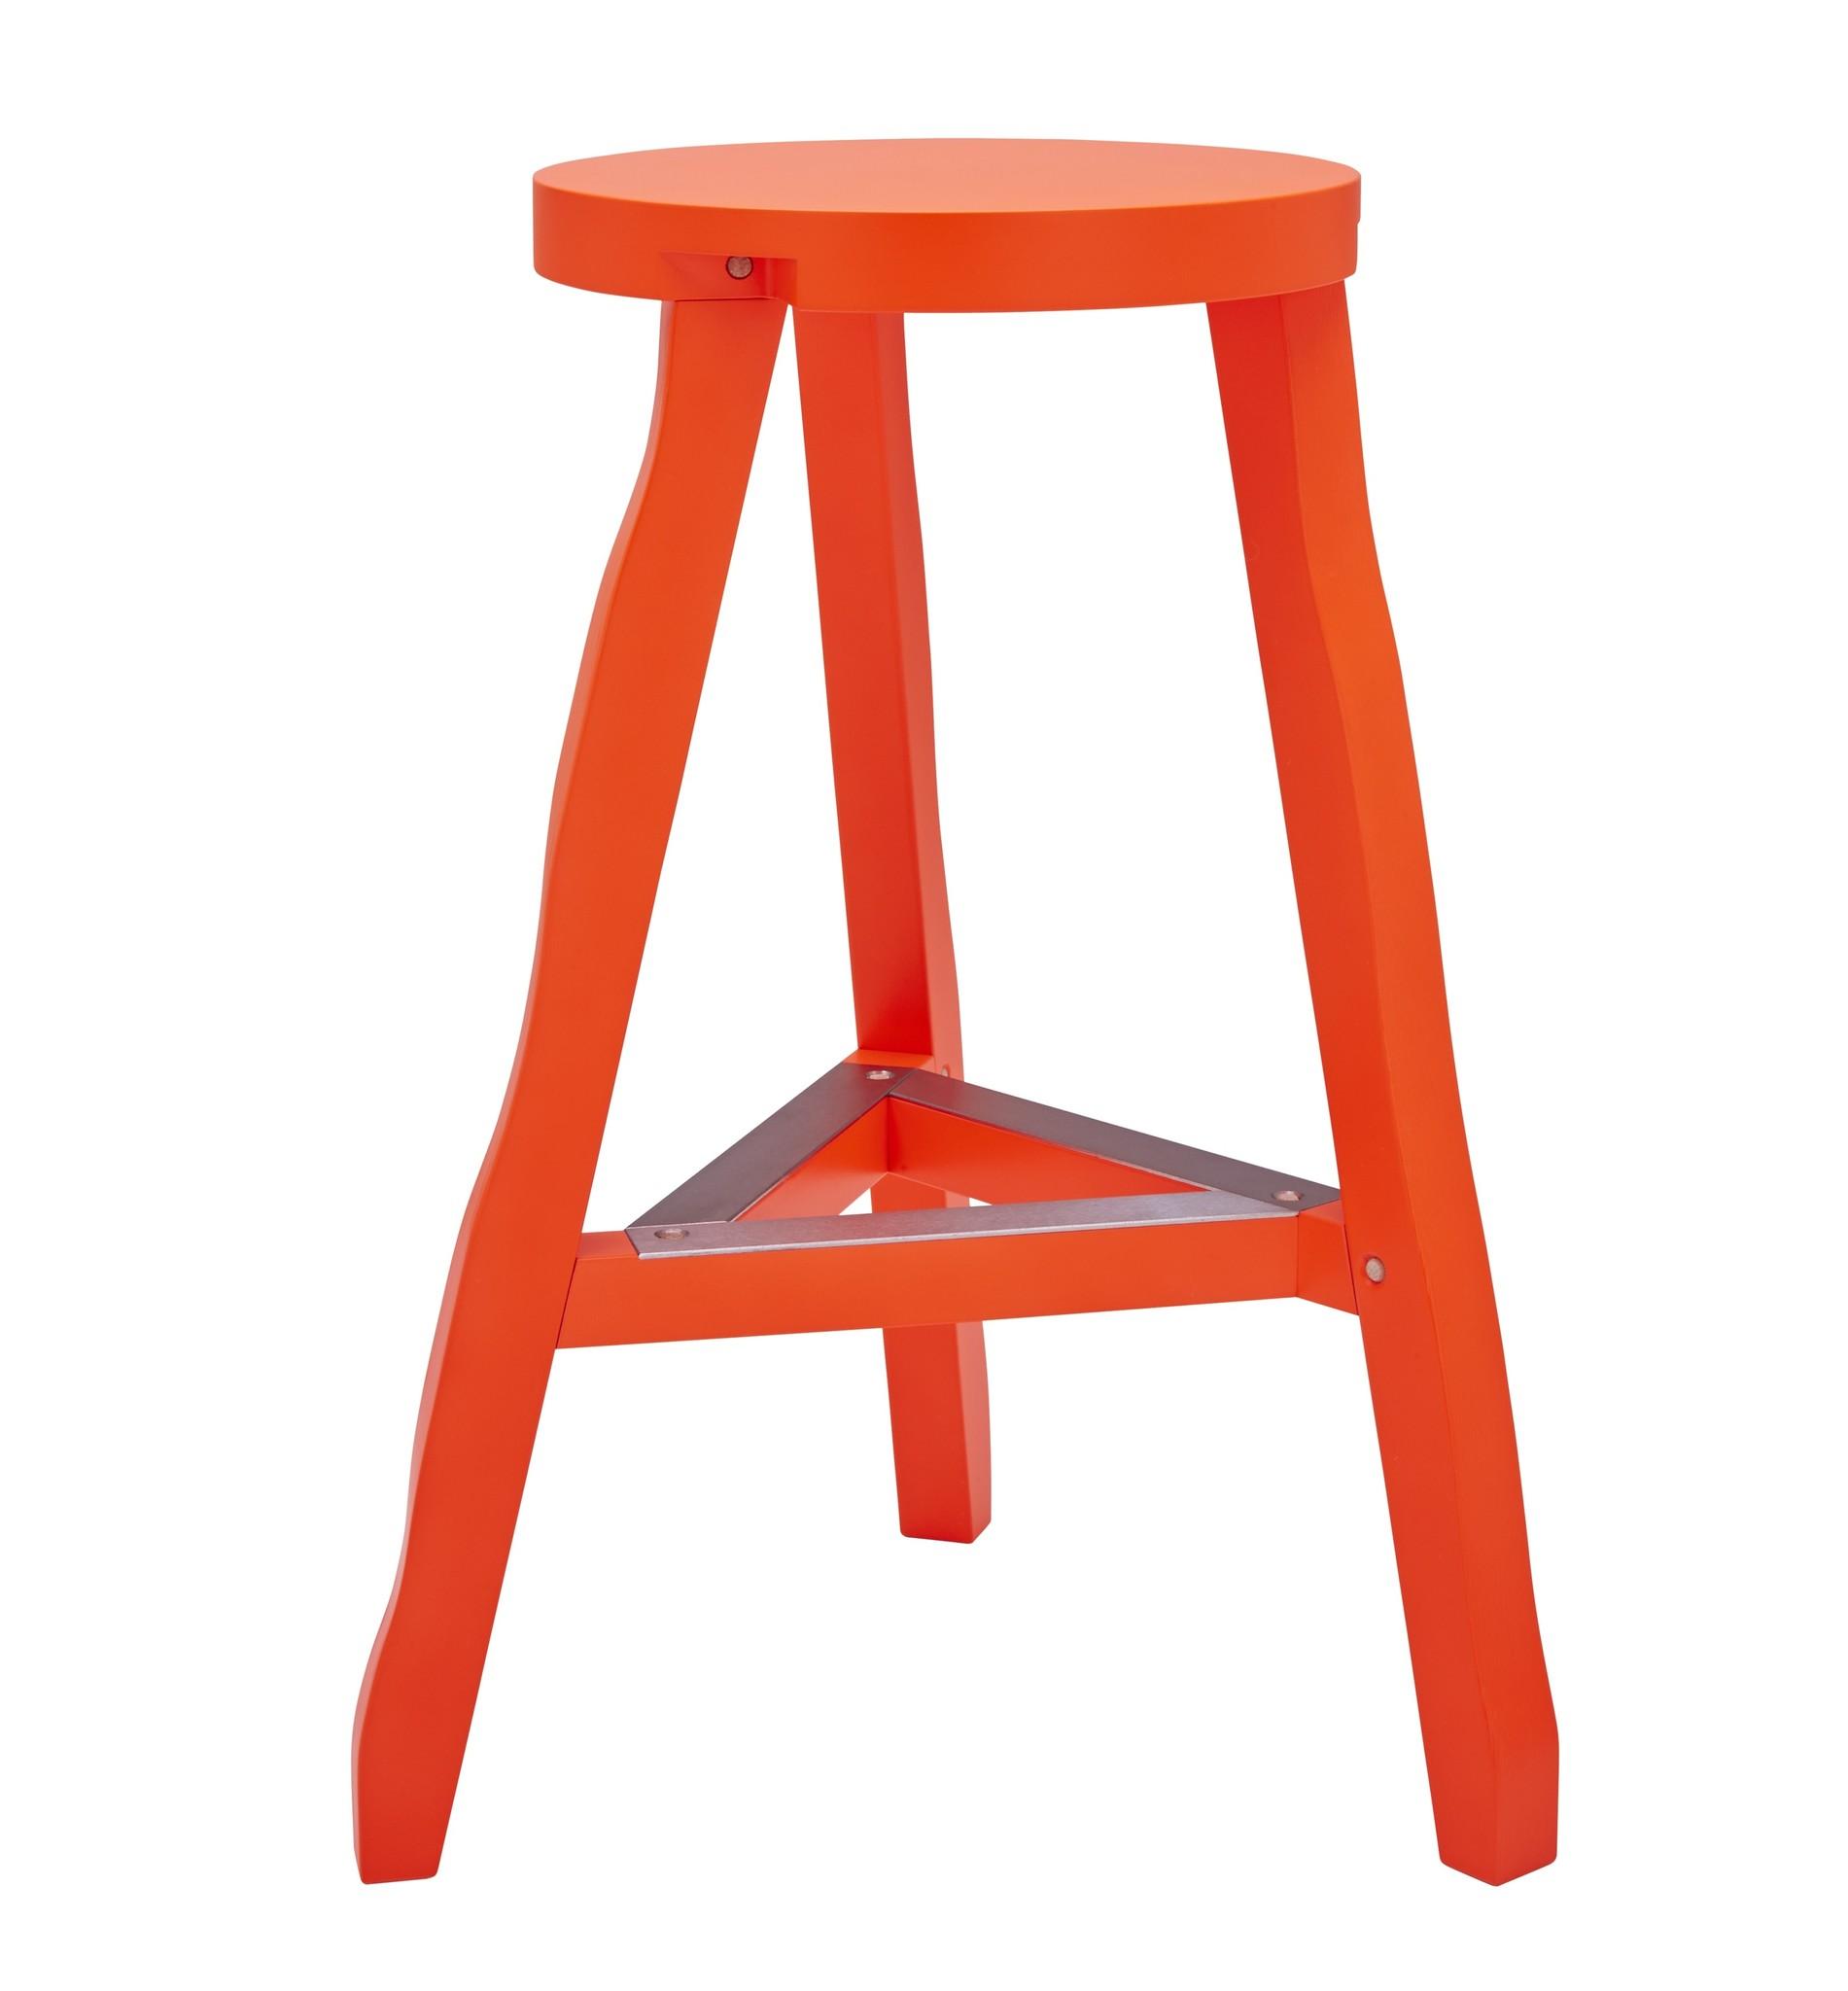 Tom Dixon Mobilier Offcut Stool Fluoro (Red)